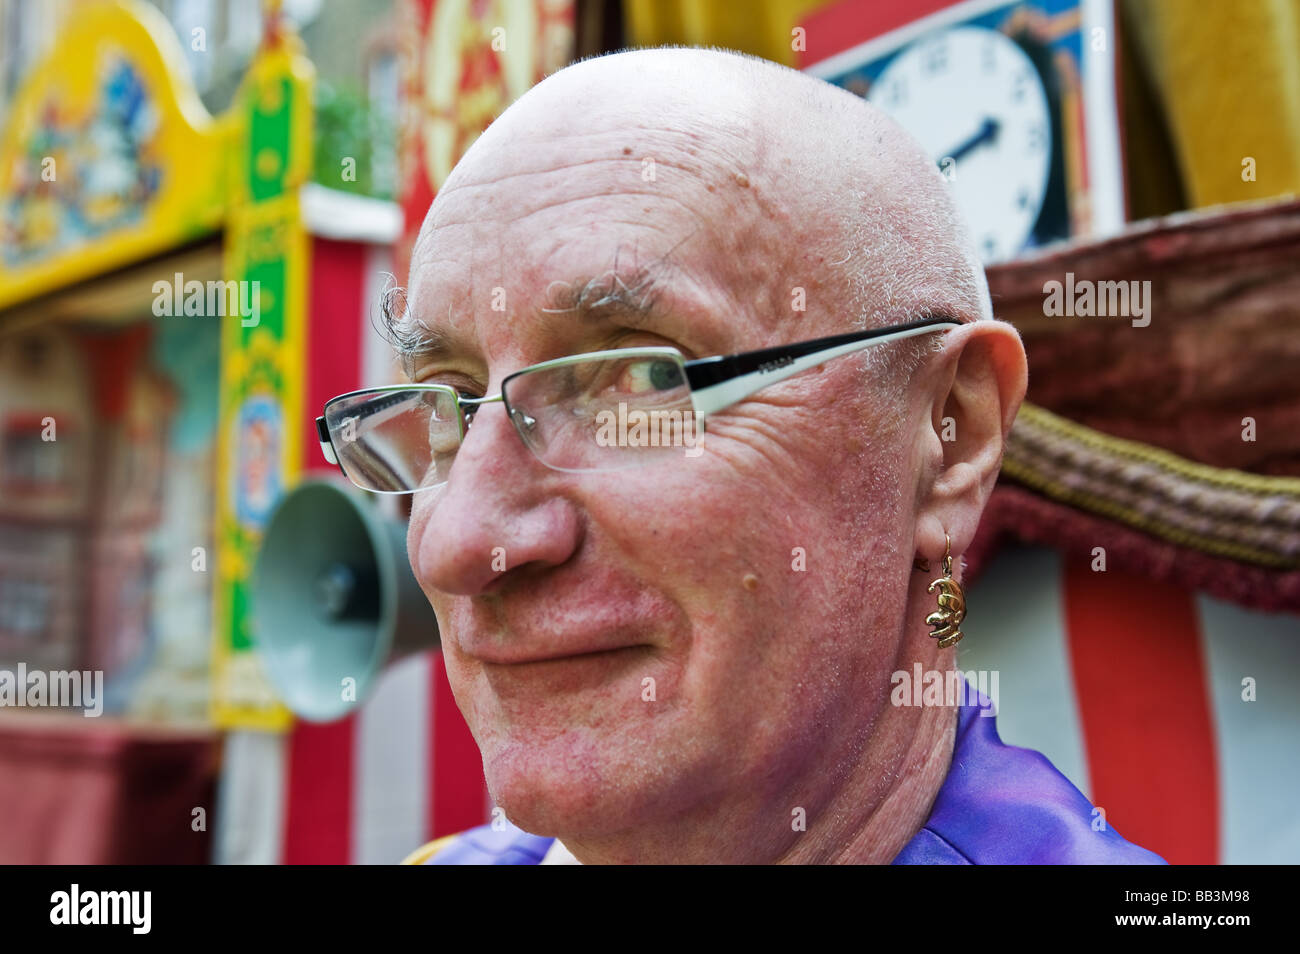 Professor Glyn Edwards wearing a Punch and Judy earring.  Photo by Gordon Scammell - Stock Image